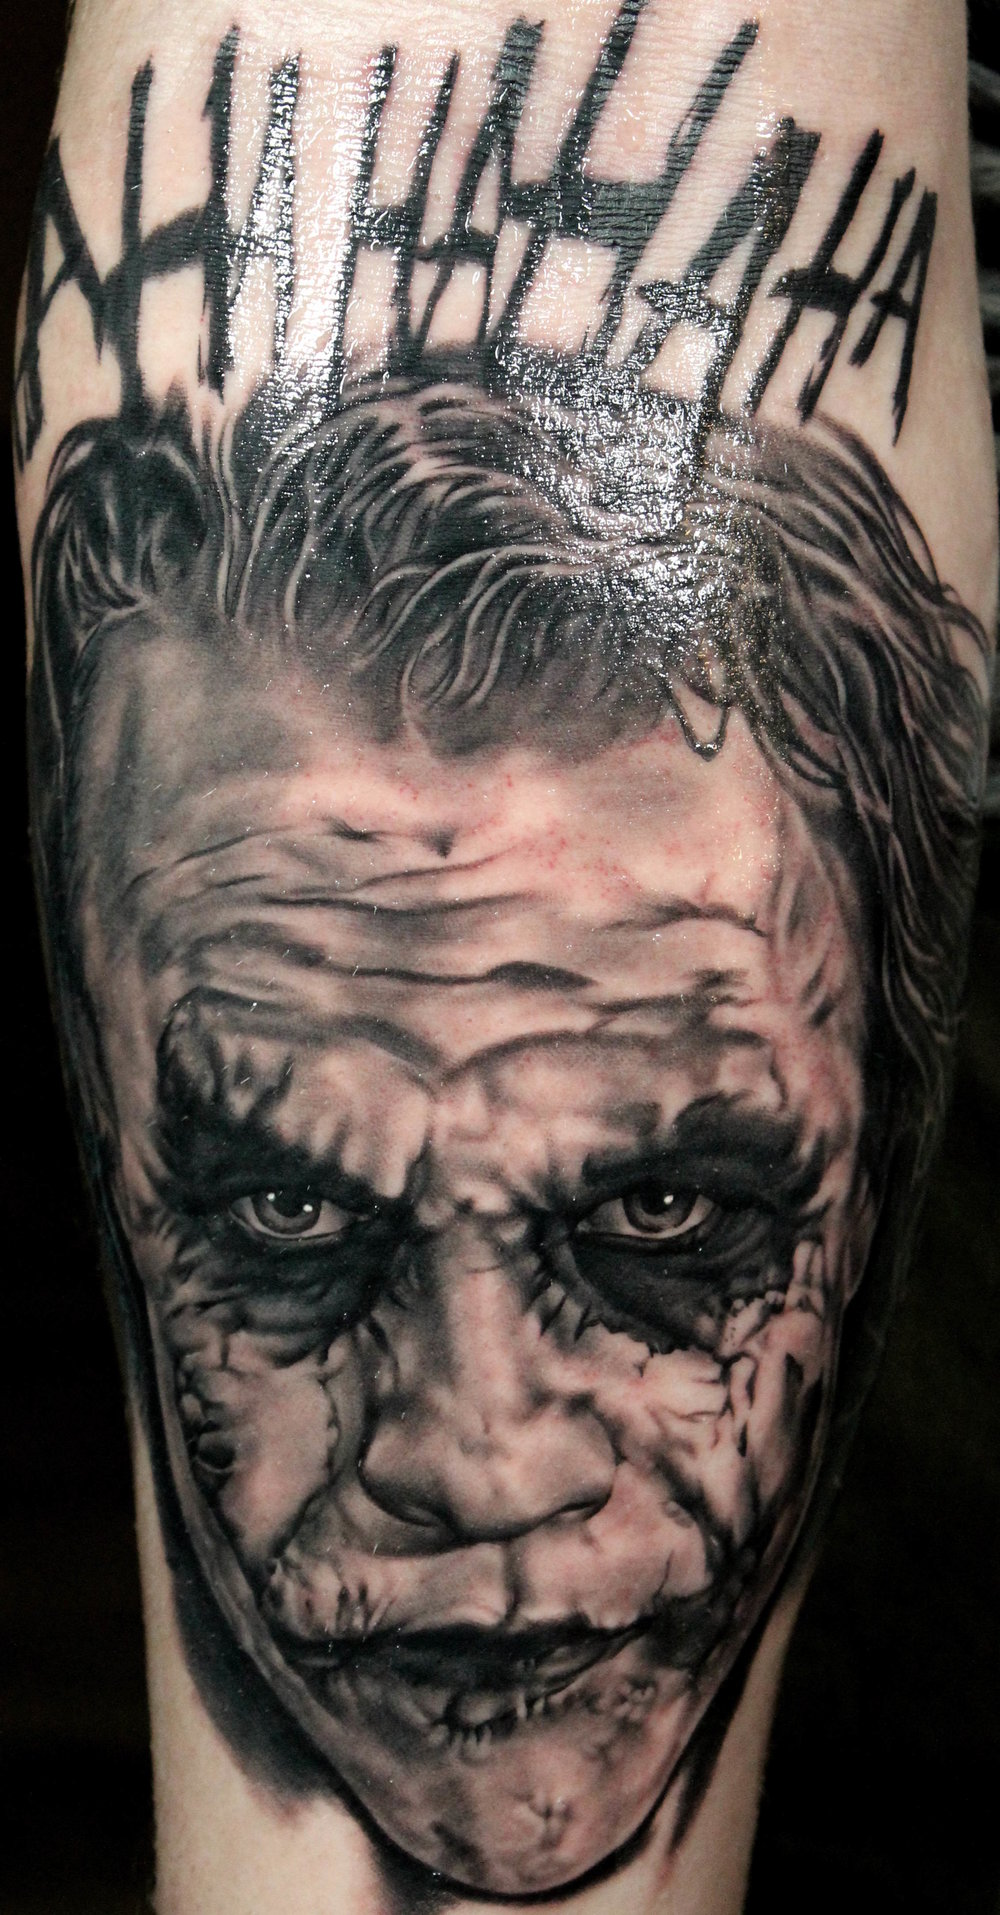 Cardinal Tattoo's resident realism artist, Will, completed this awesome portrait of Heath Ledger as the Joker from the Dark Knight series of Batman films. Regarded by many as the best portrayal of the character ever, we feel like Will did this 10 hour piece justice. If you're in the greater Nashville or Hendersonville areas an are interested in black and grey or color portraiture or realism, Cardinal Tattoo is the place for you!